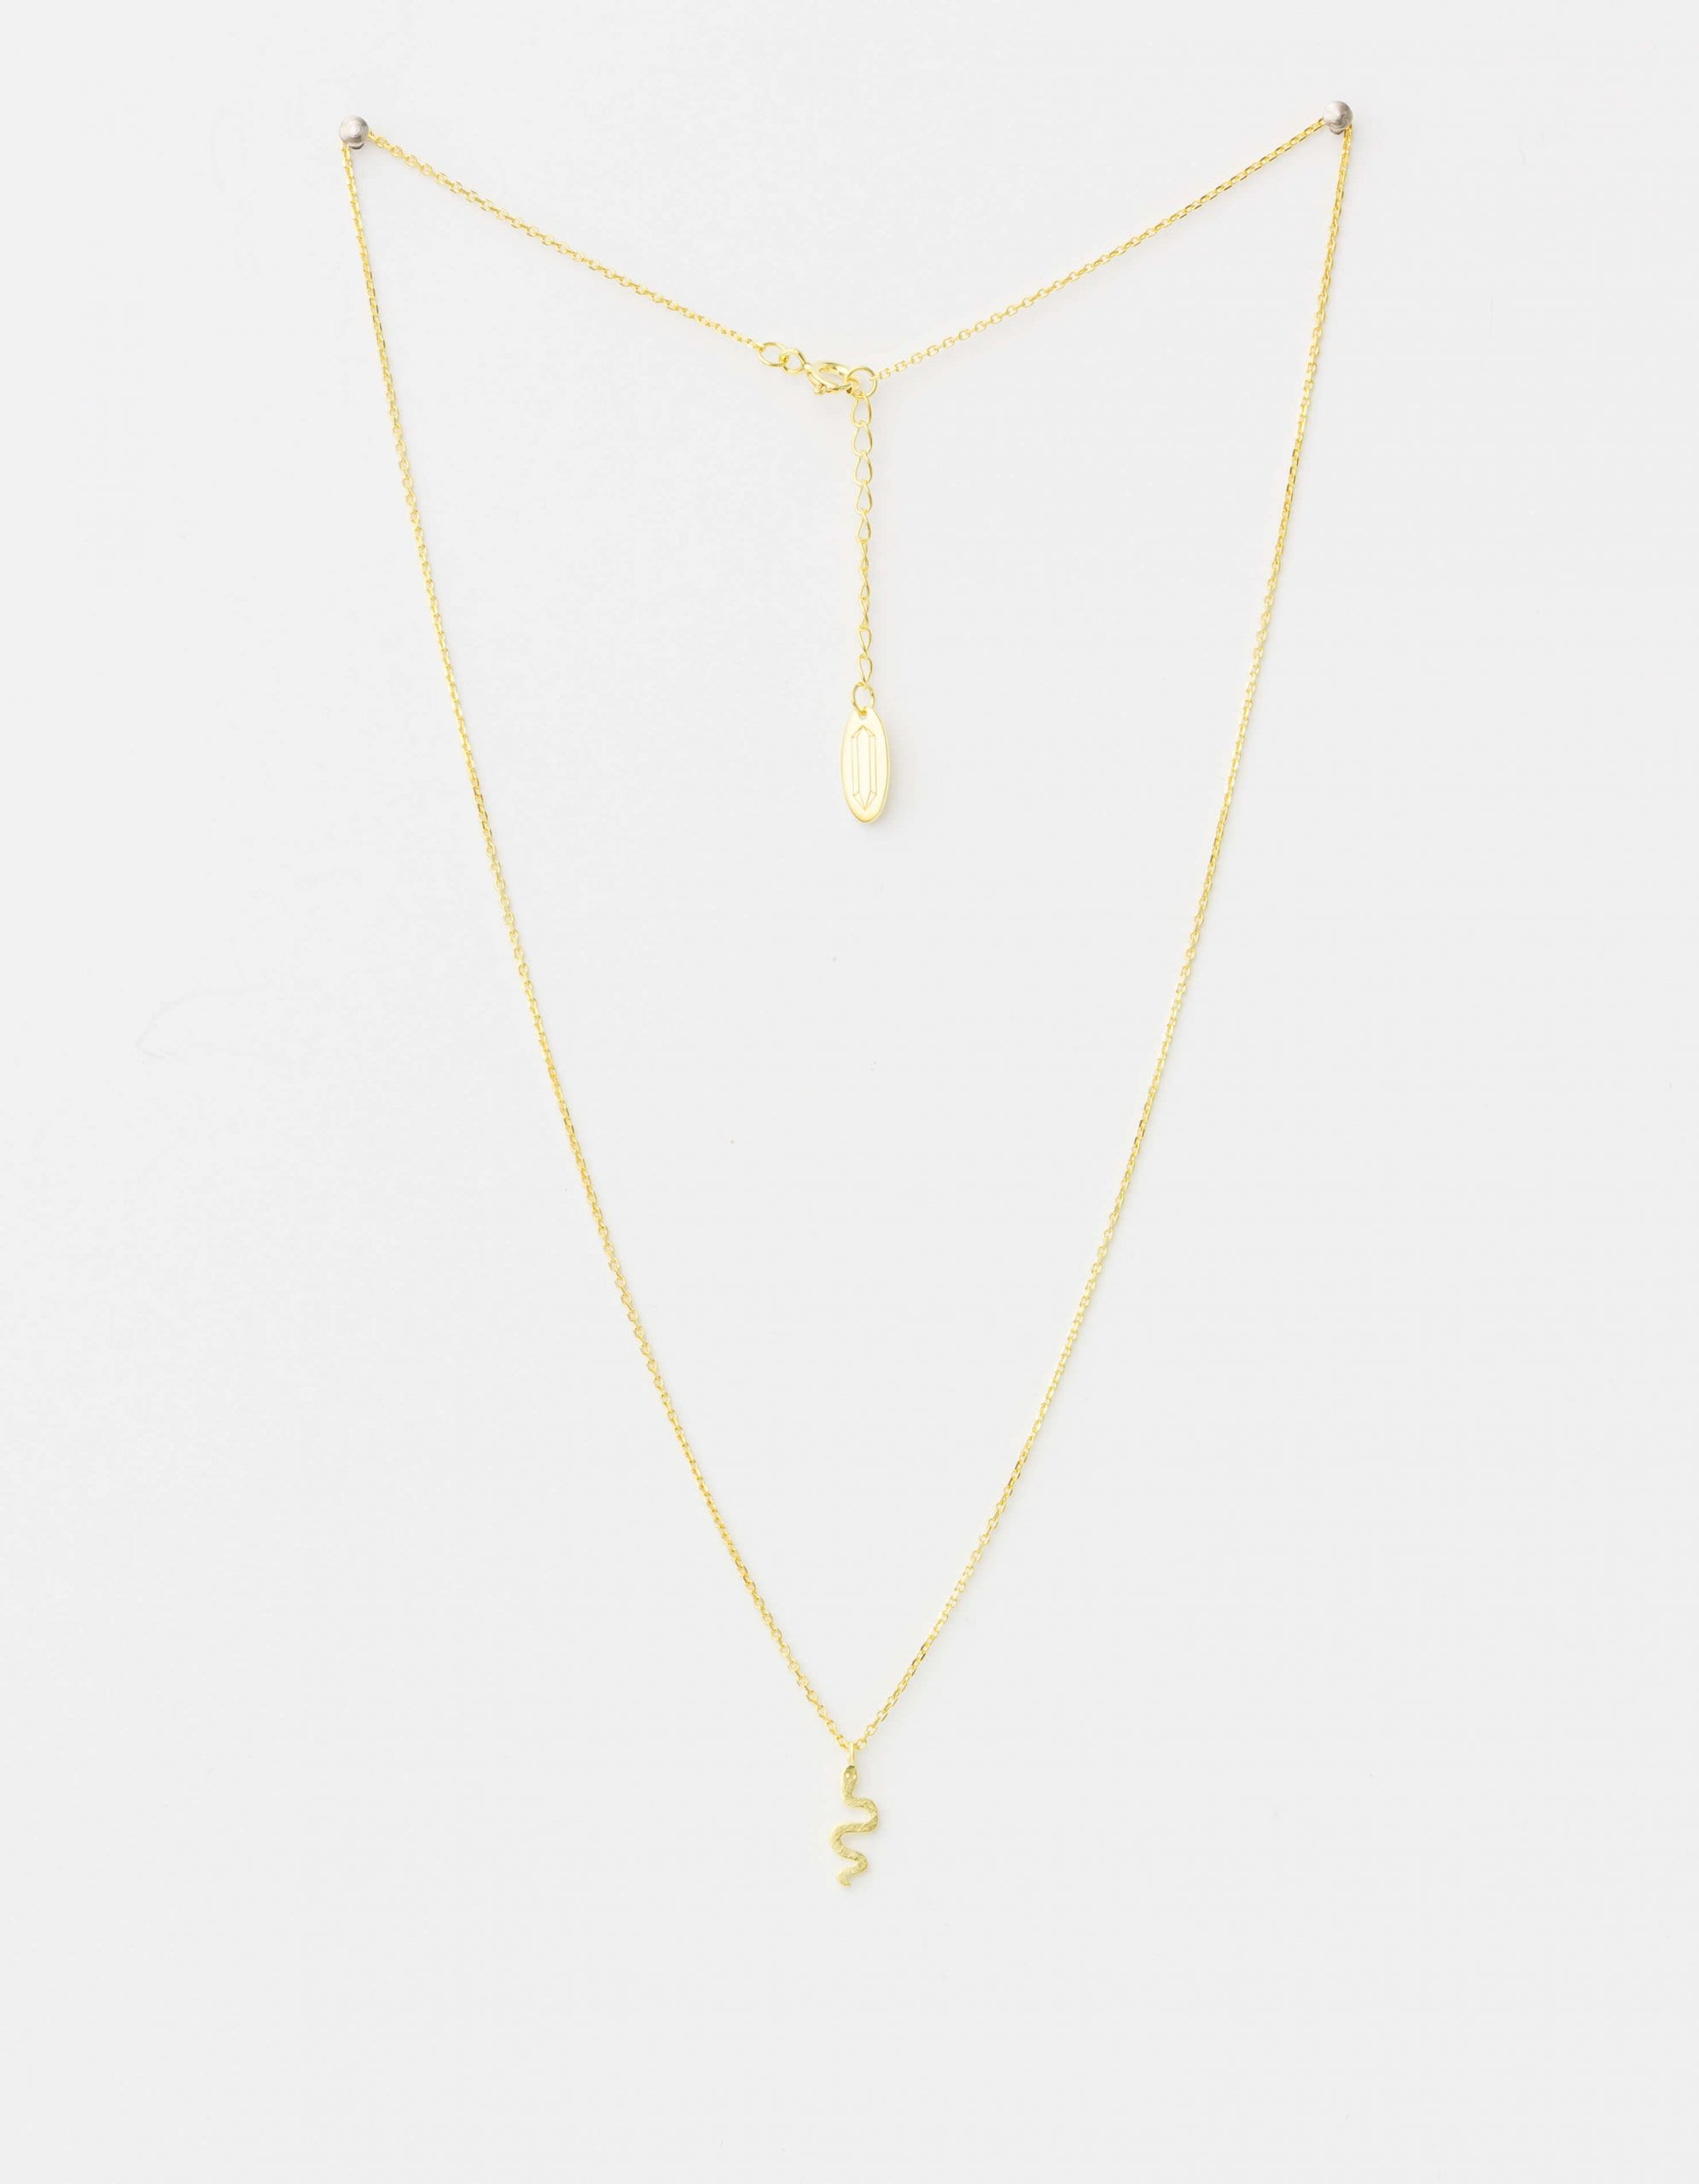 Serpent Necklace - 14kt Gold Plate